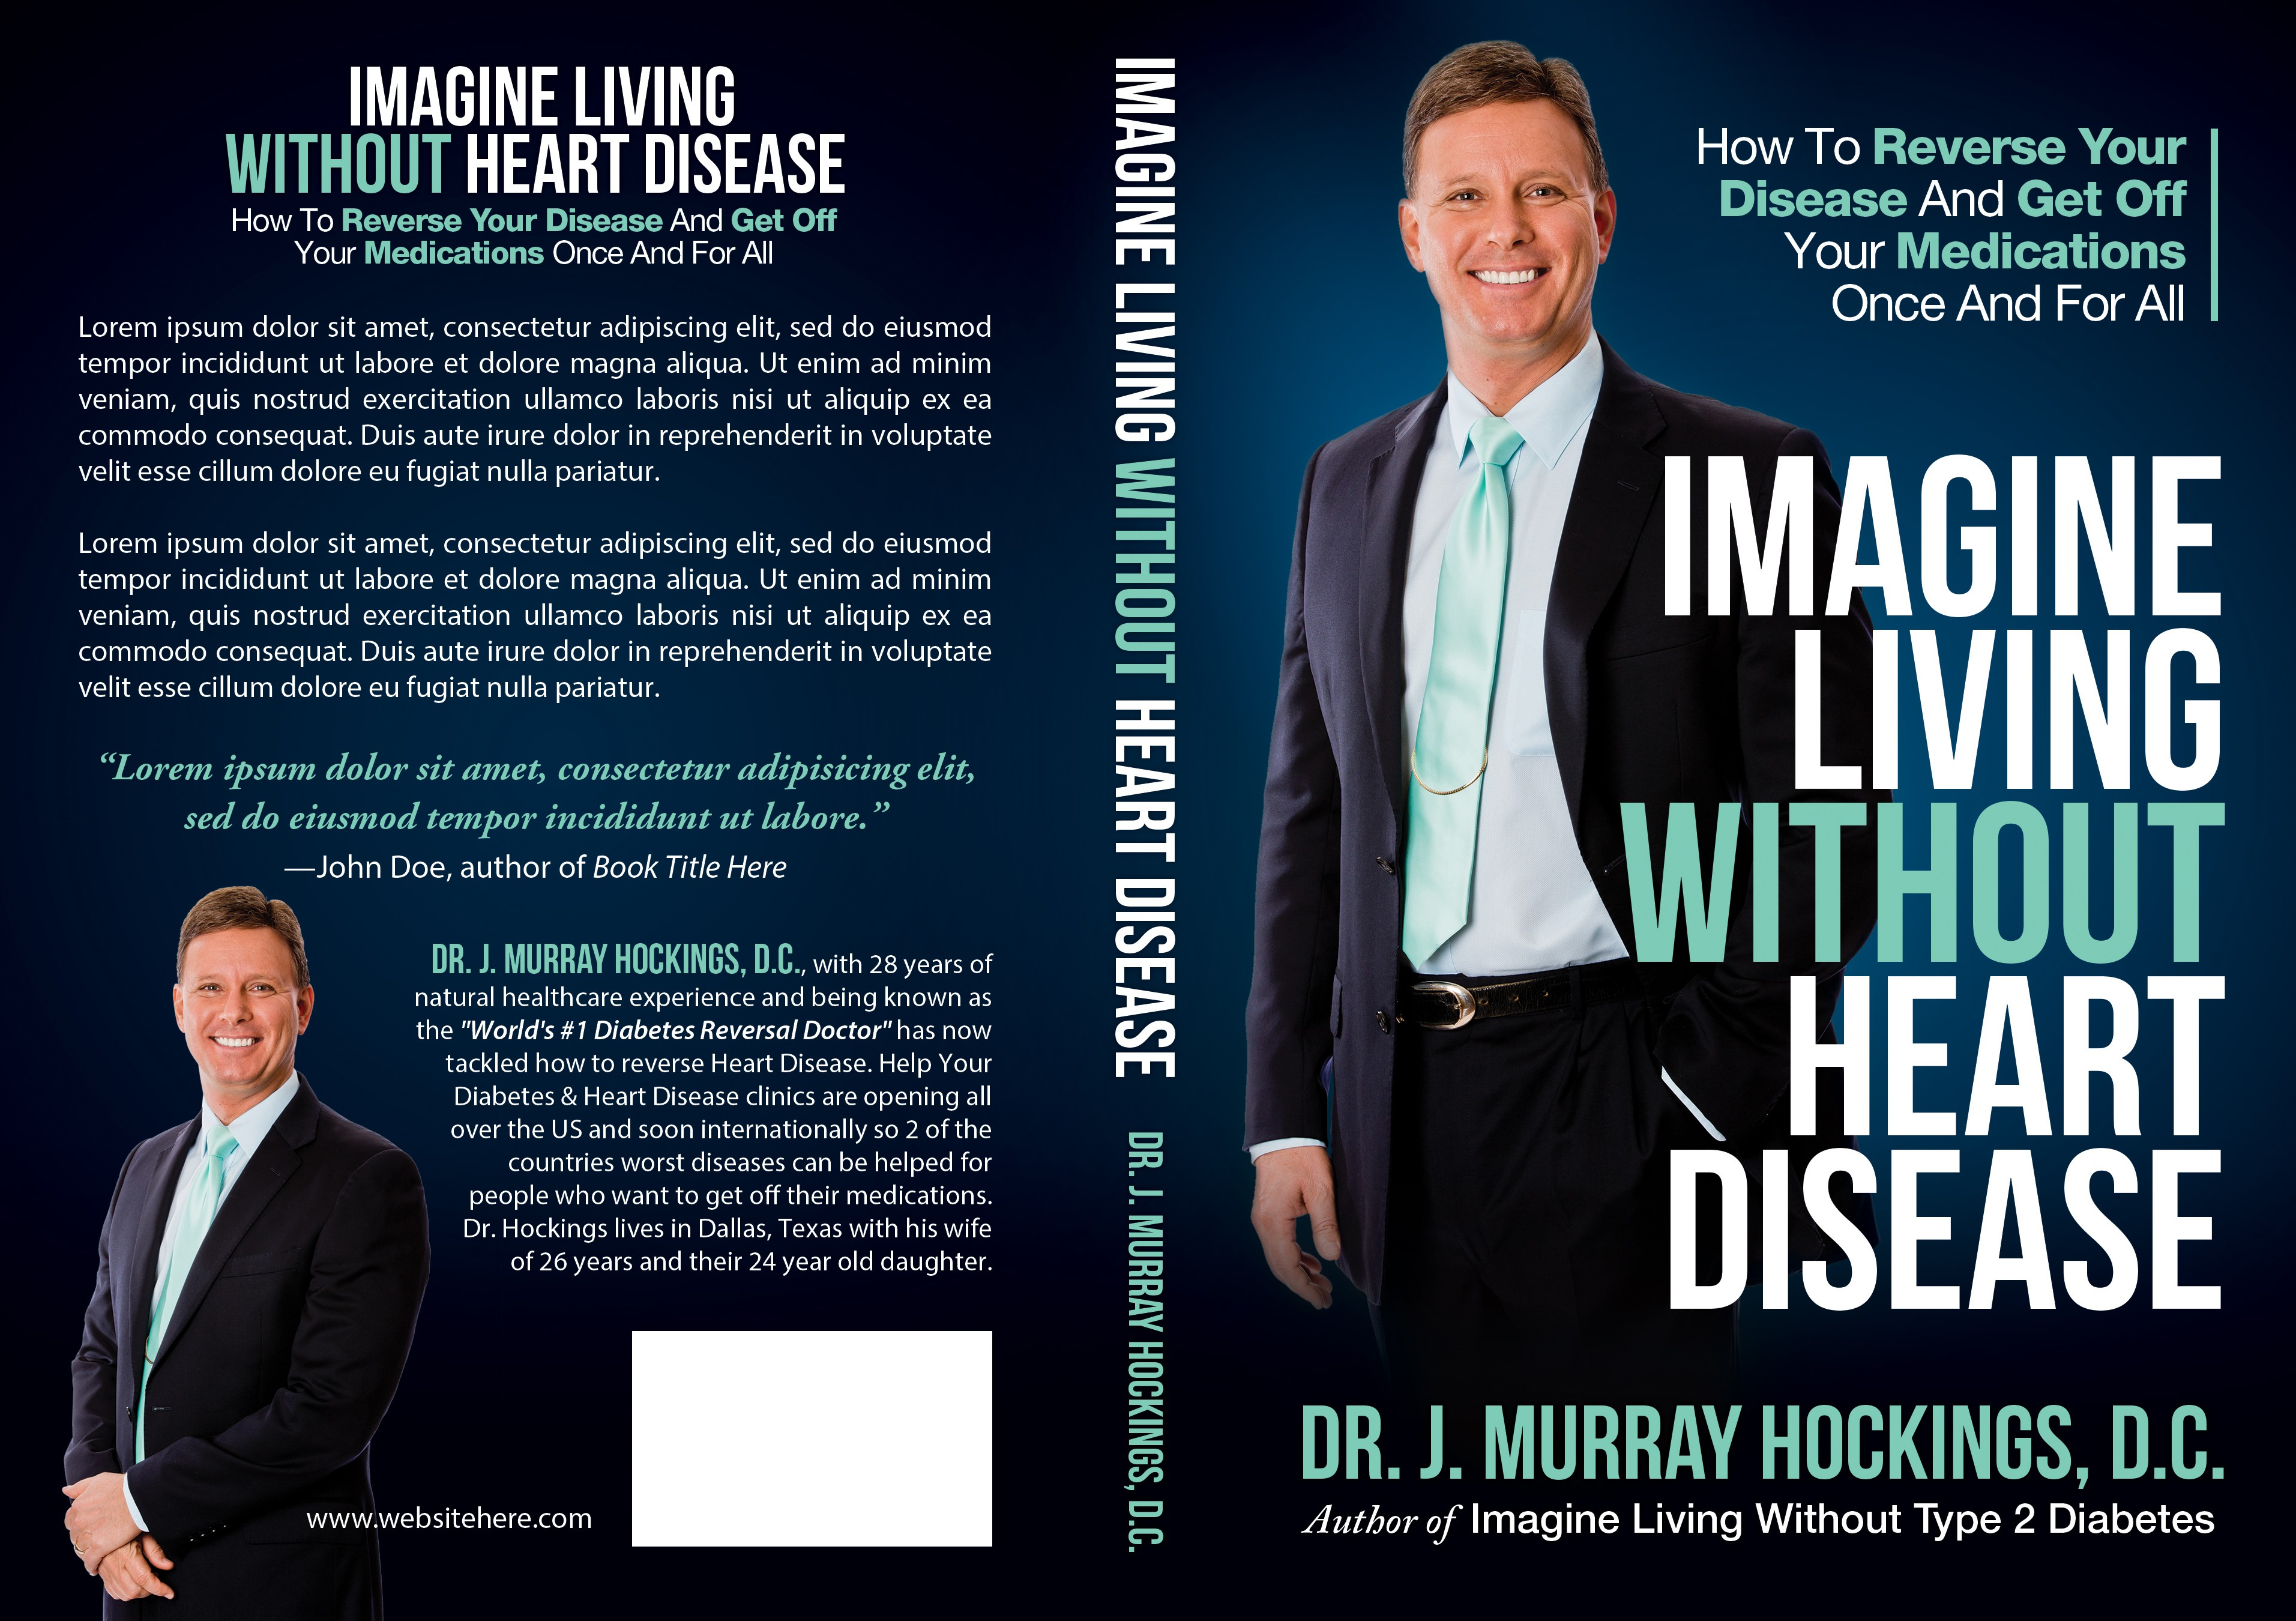 Book cover needed for Heart Disease reversal book